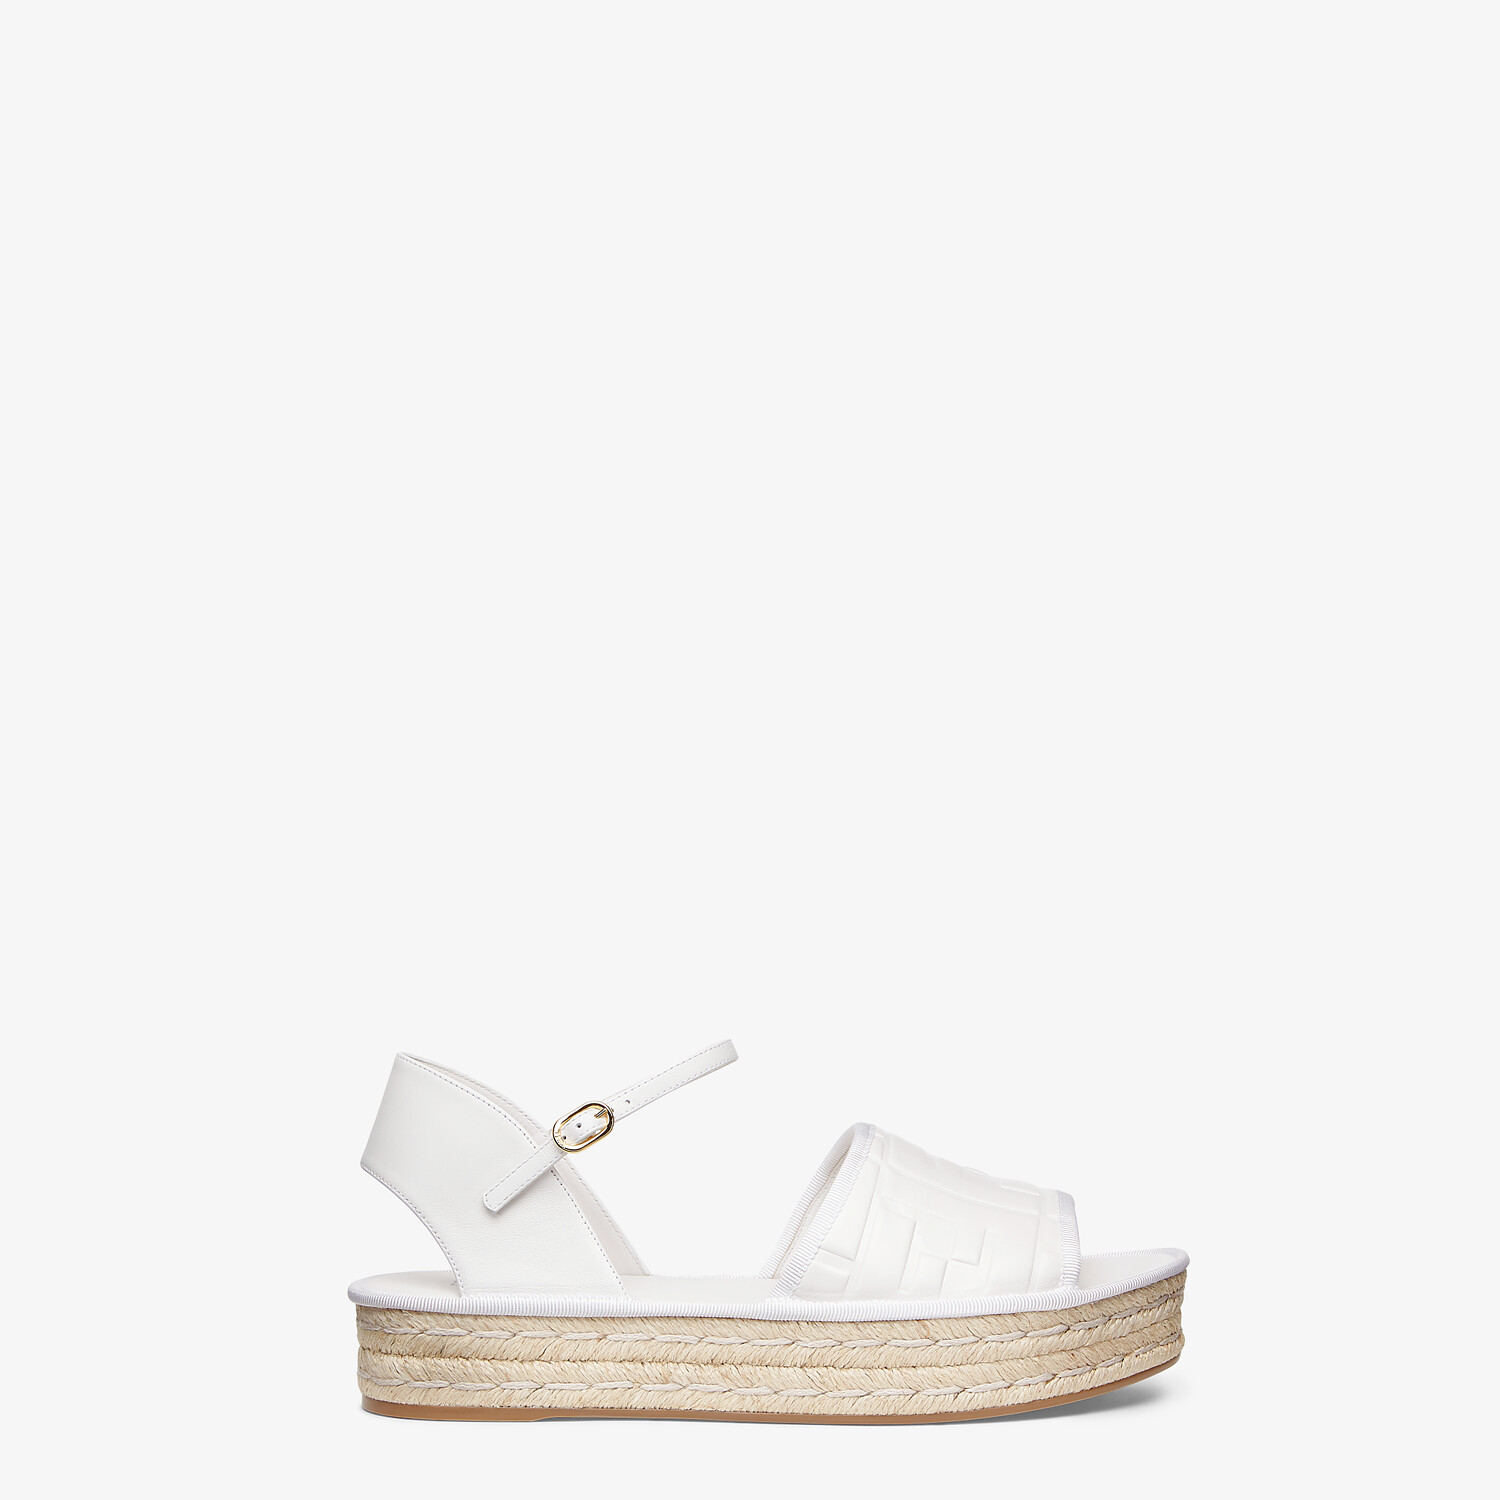 FENDI ESPADRILLES - White leather flatform espadrilles - view 1 detail